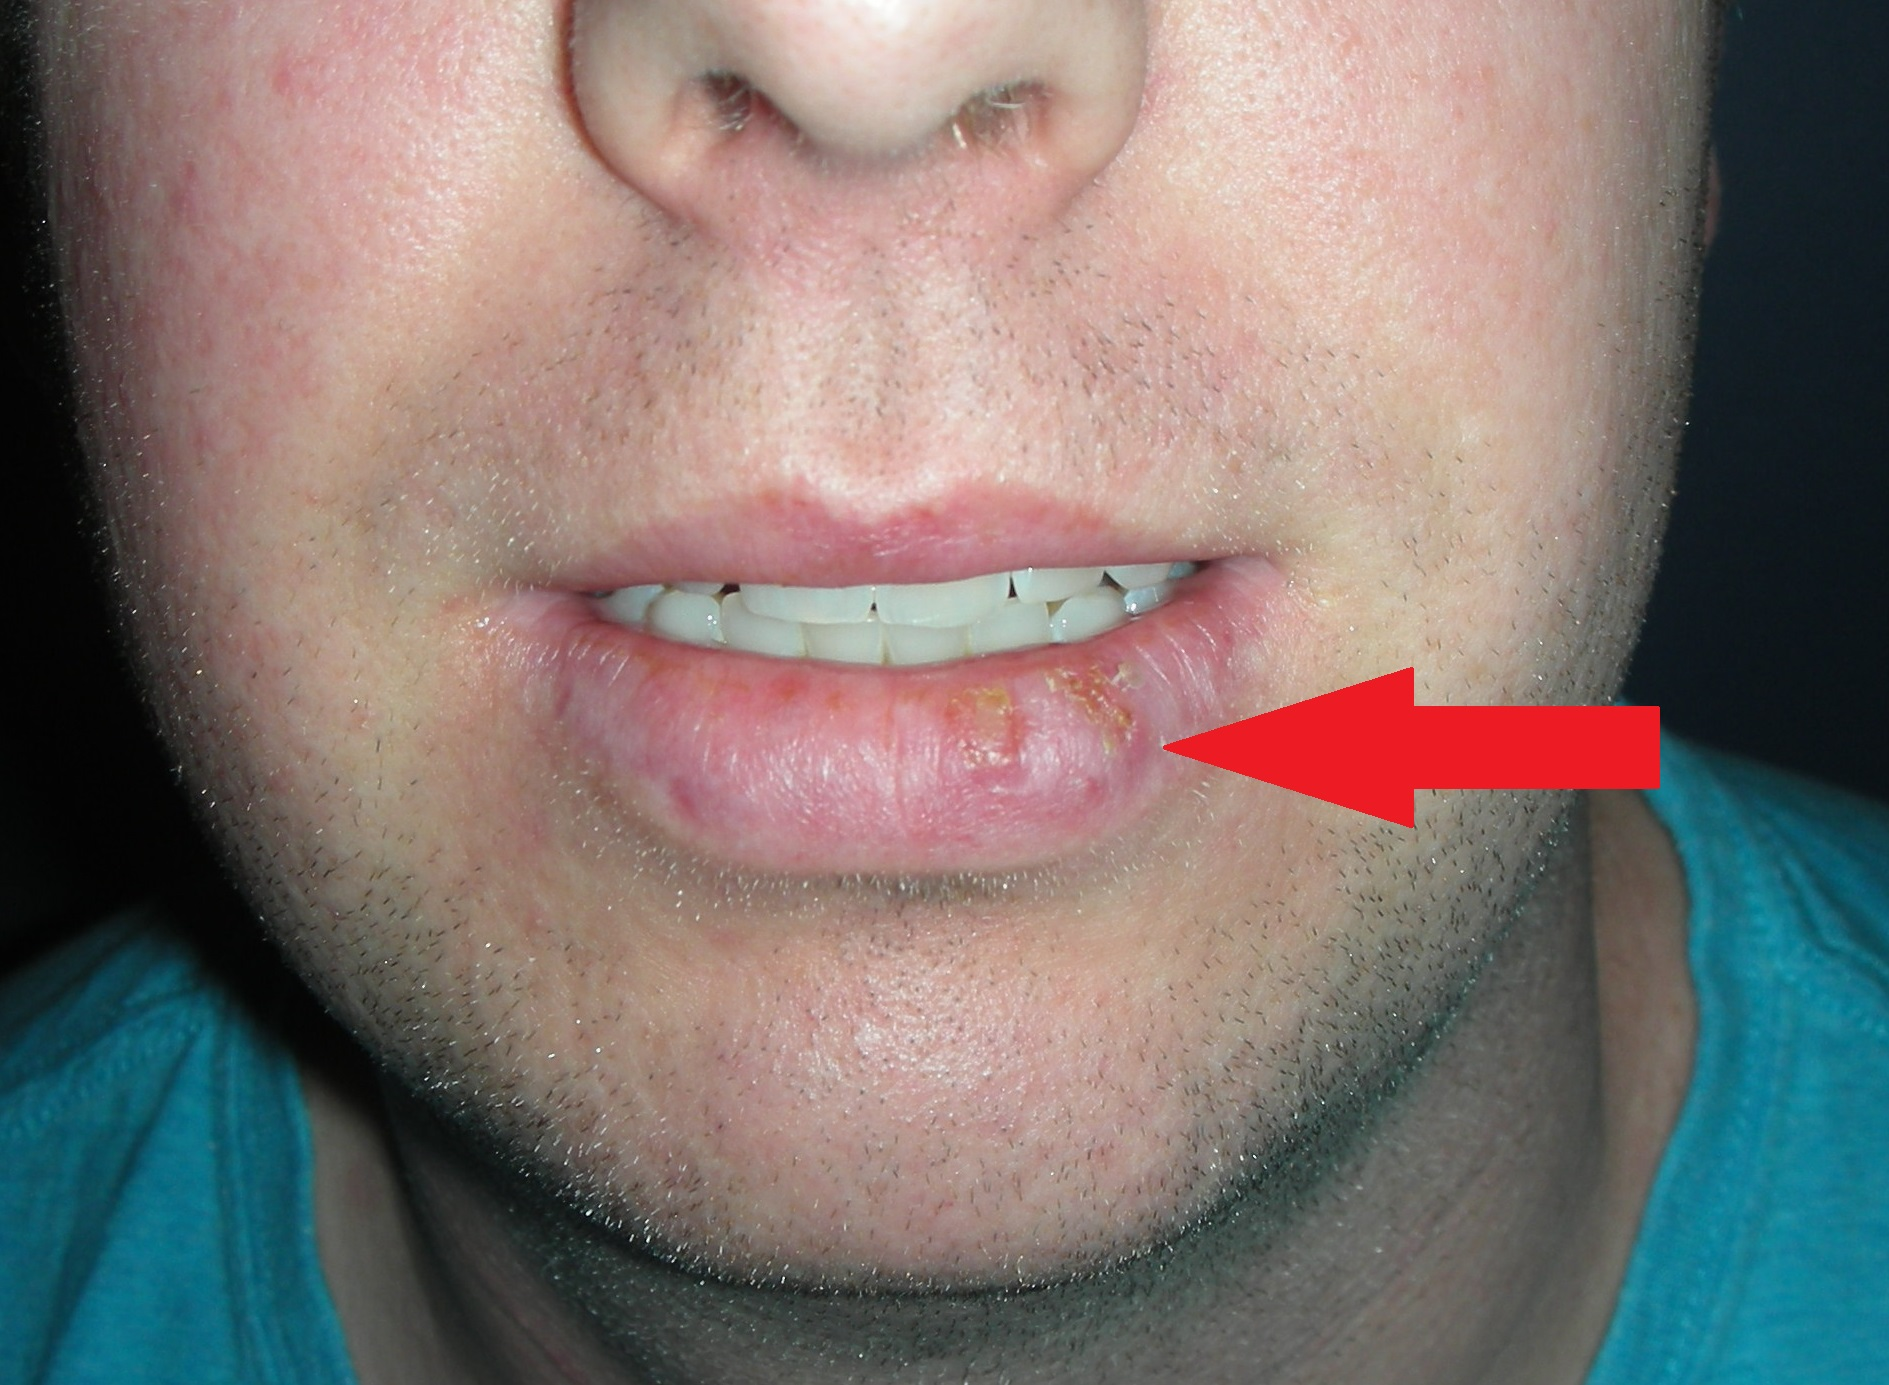 Pictures of Oral Cavity and Throat Disorders